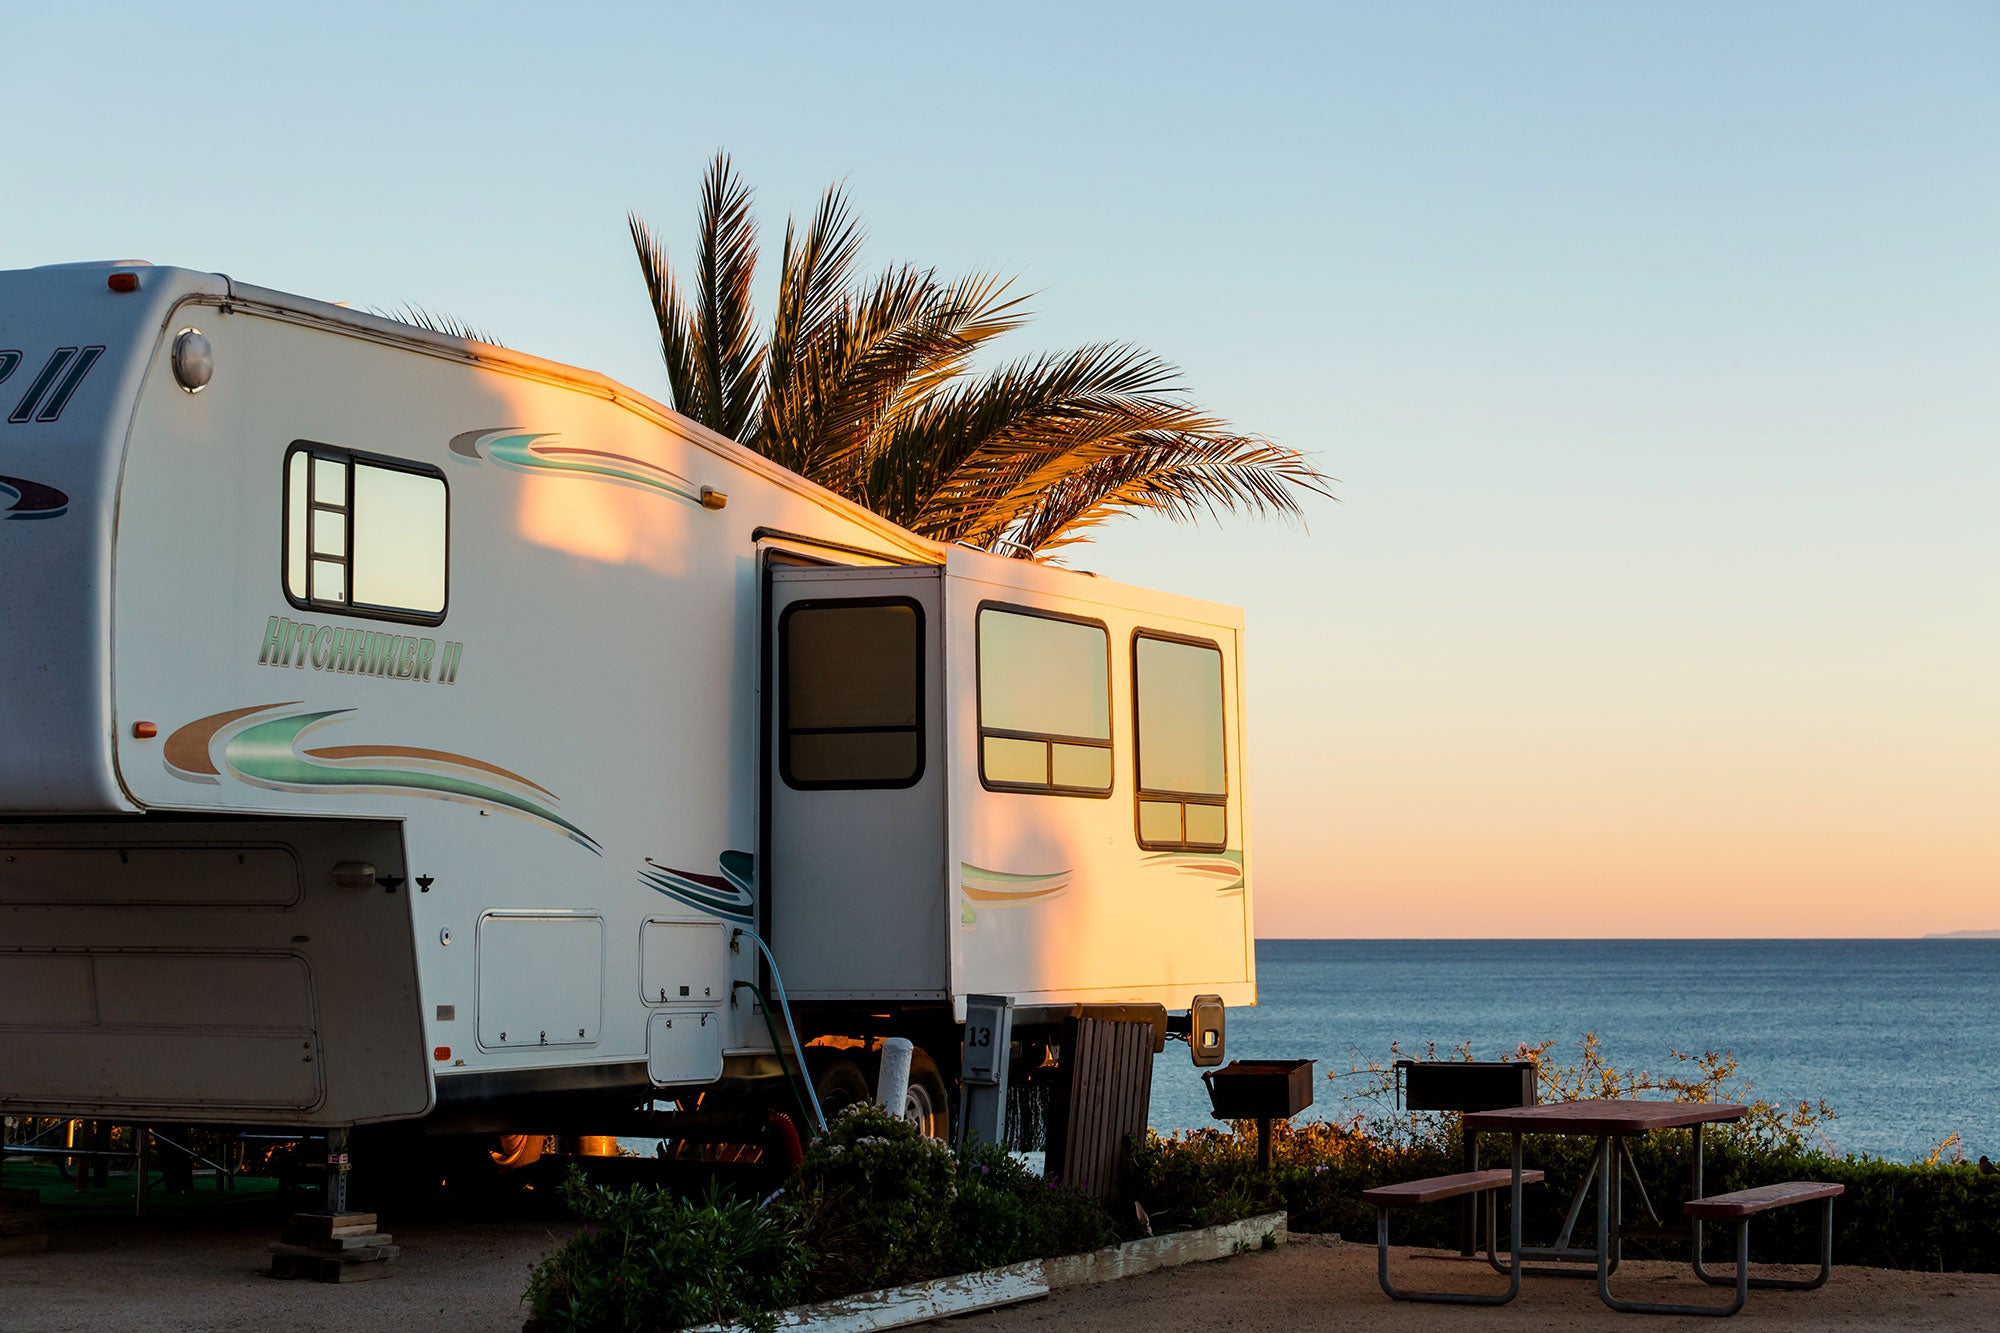 rv set up in beach campsite as the sun sets over the water